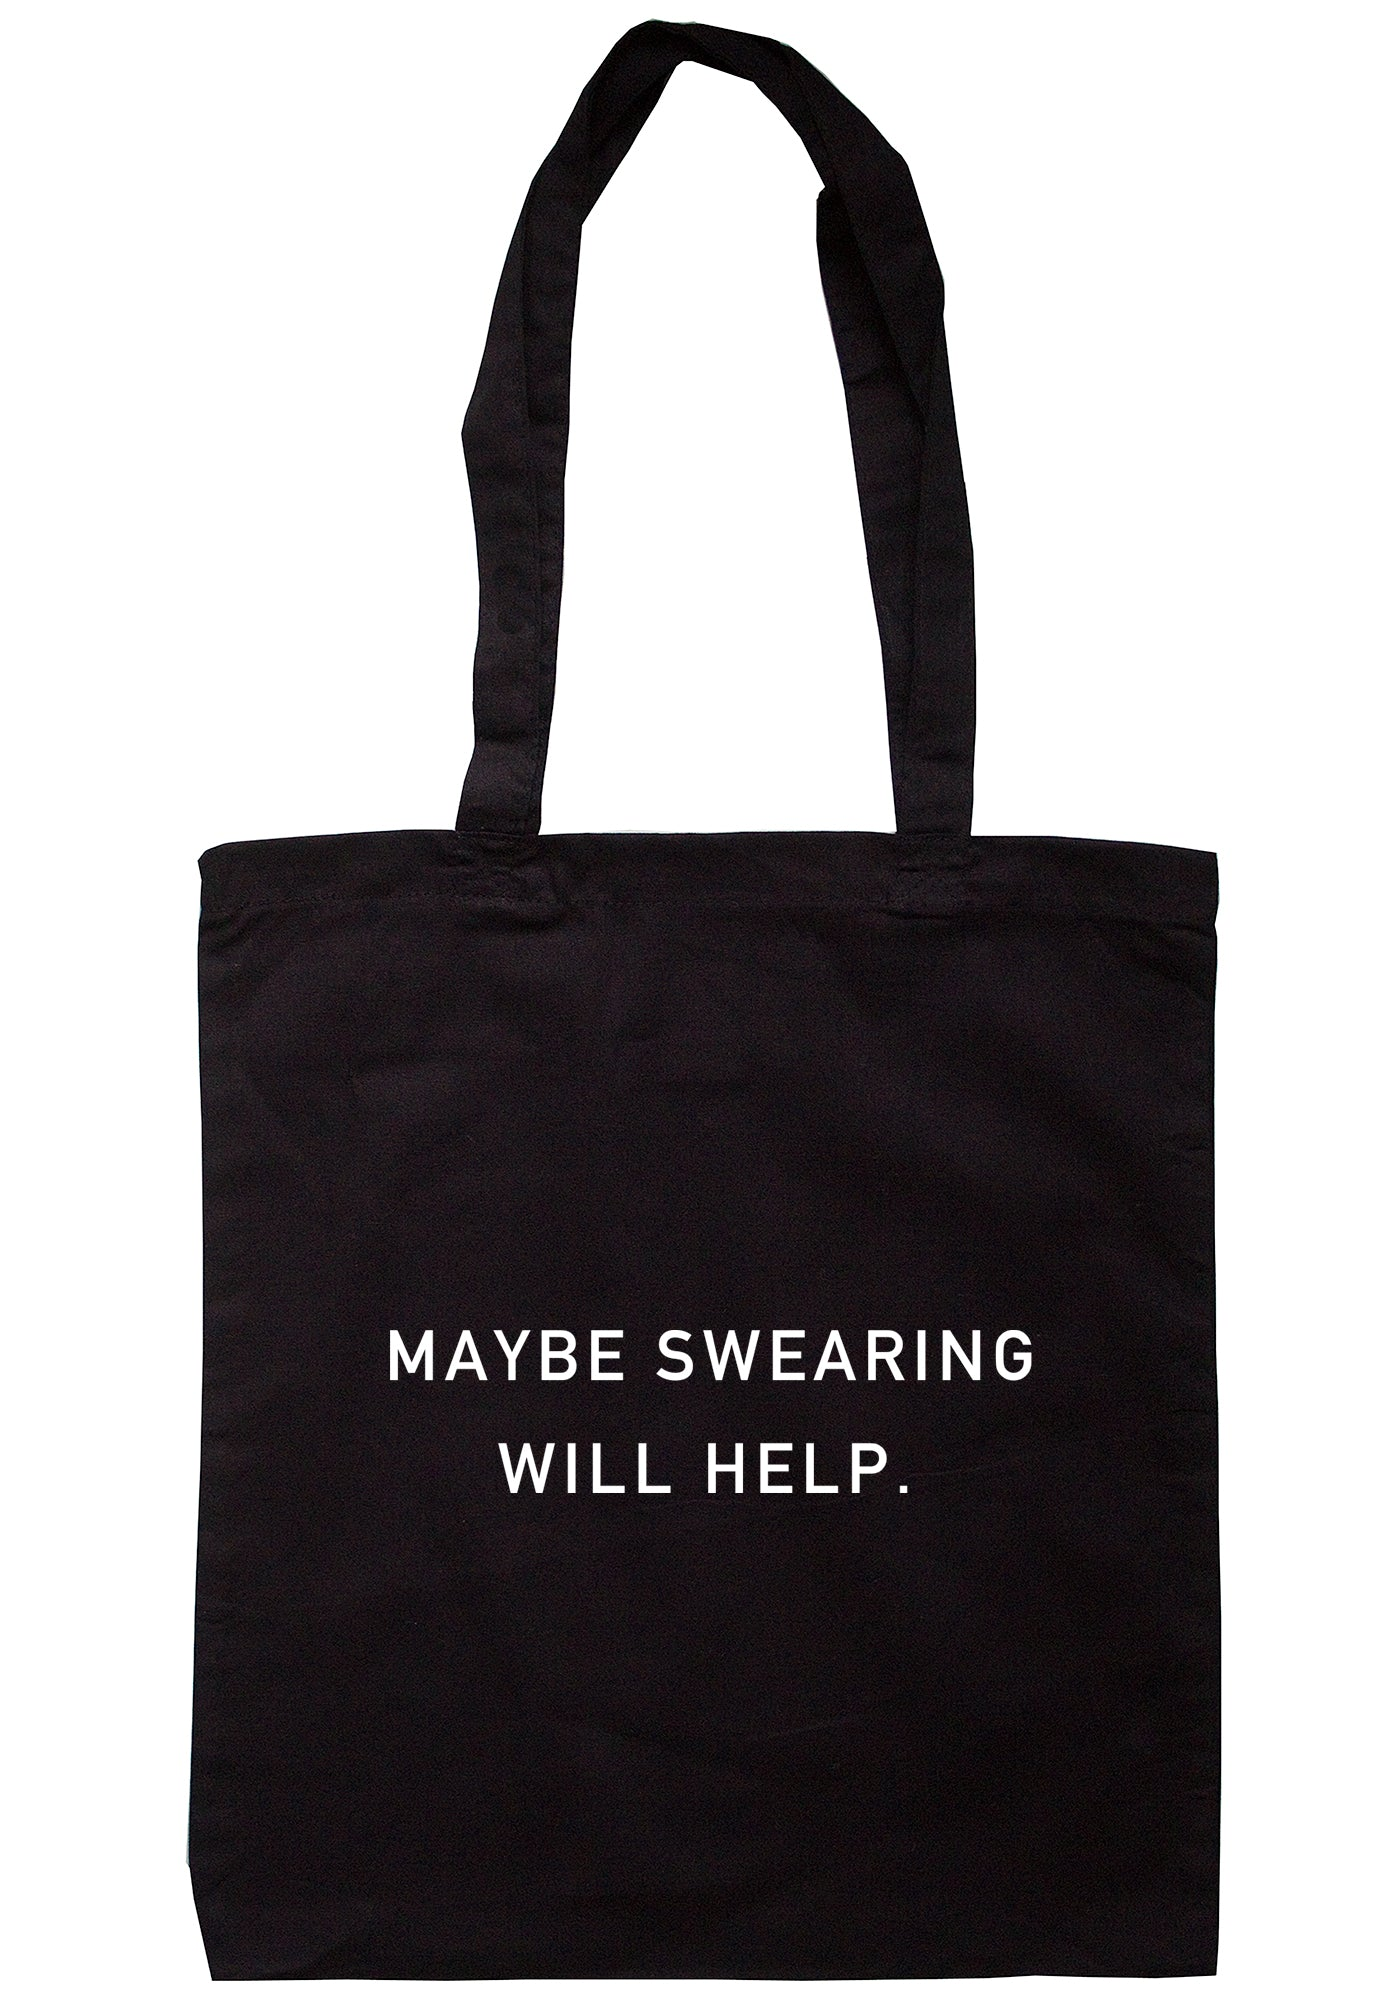 Maybe Swearing Will Help Tote Bag S1029 - Illustrated Identity Ltd.